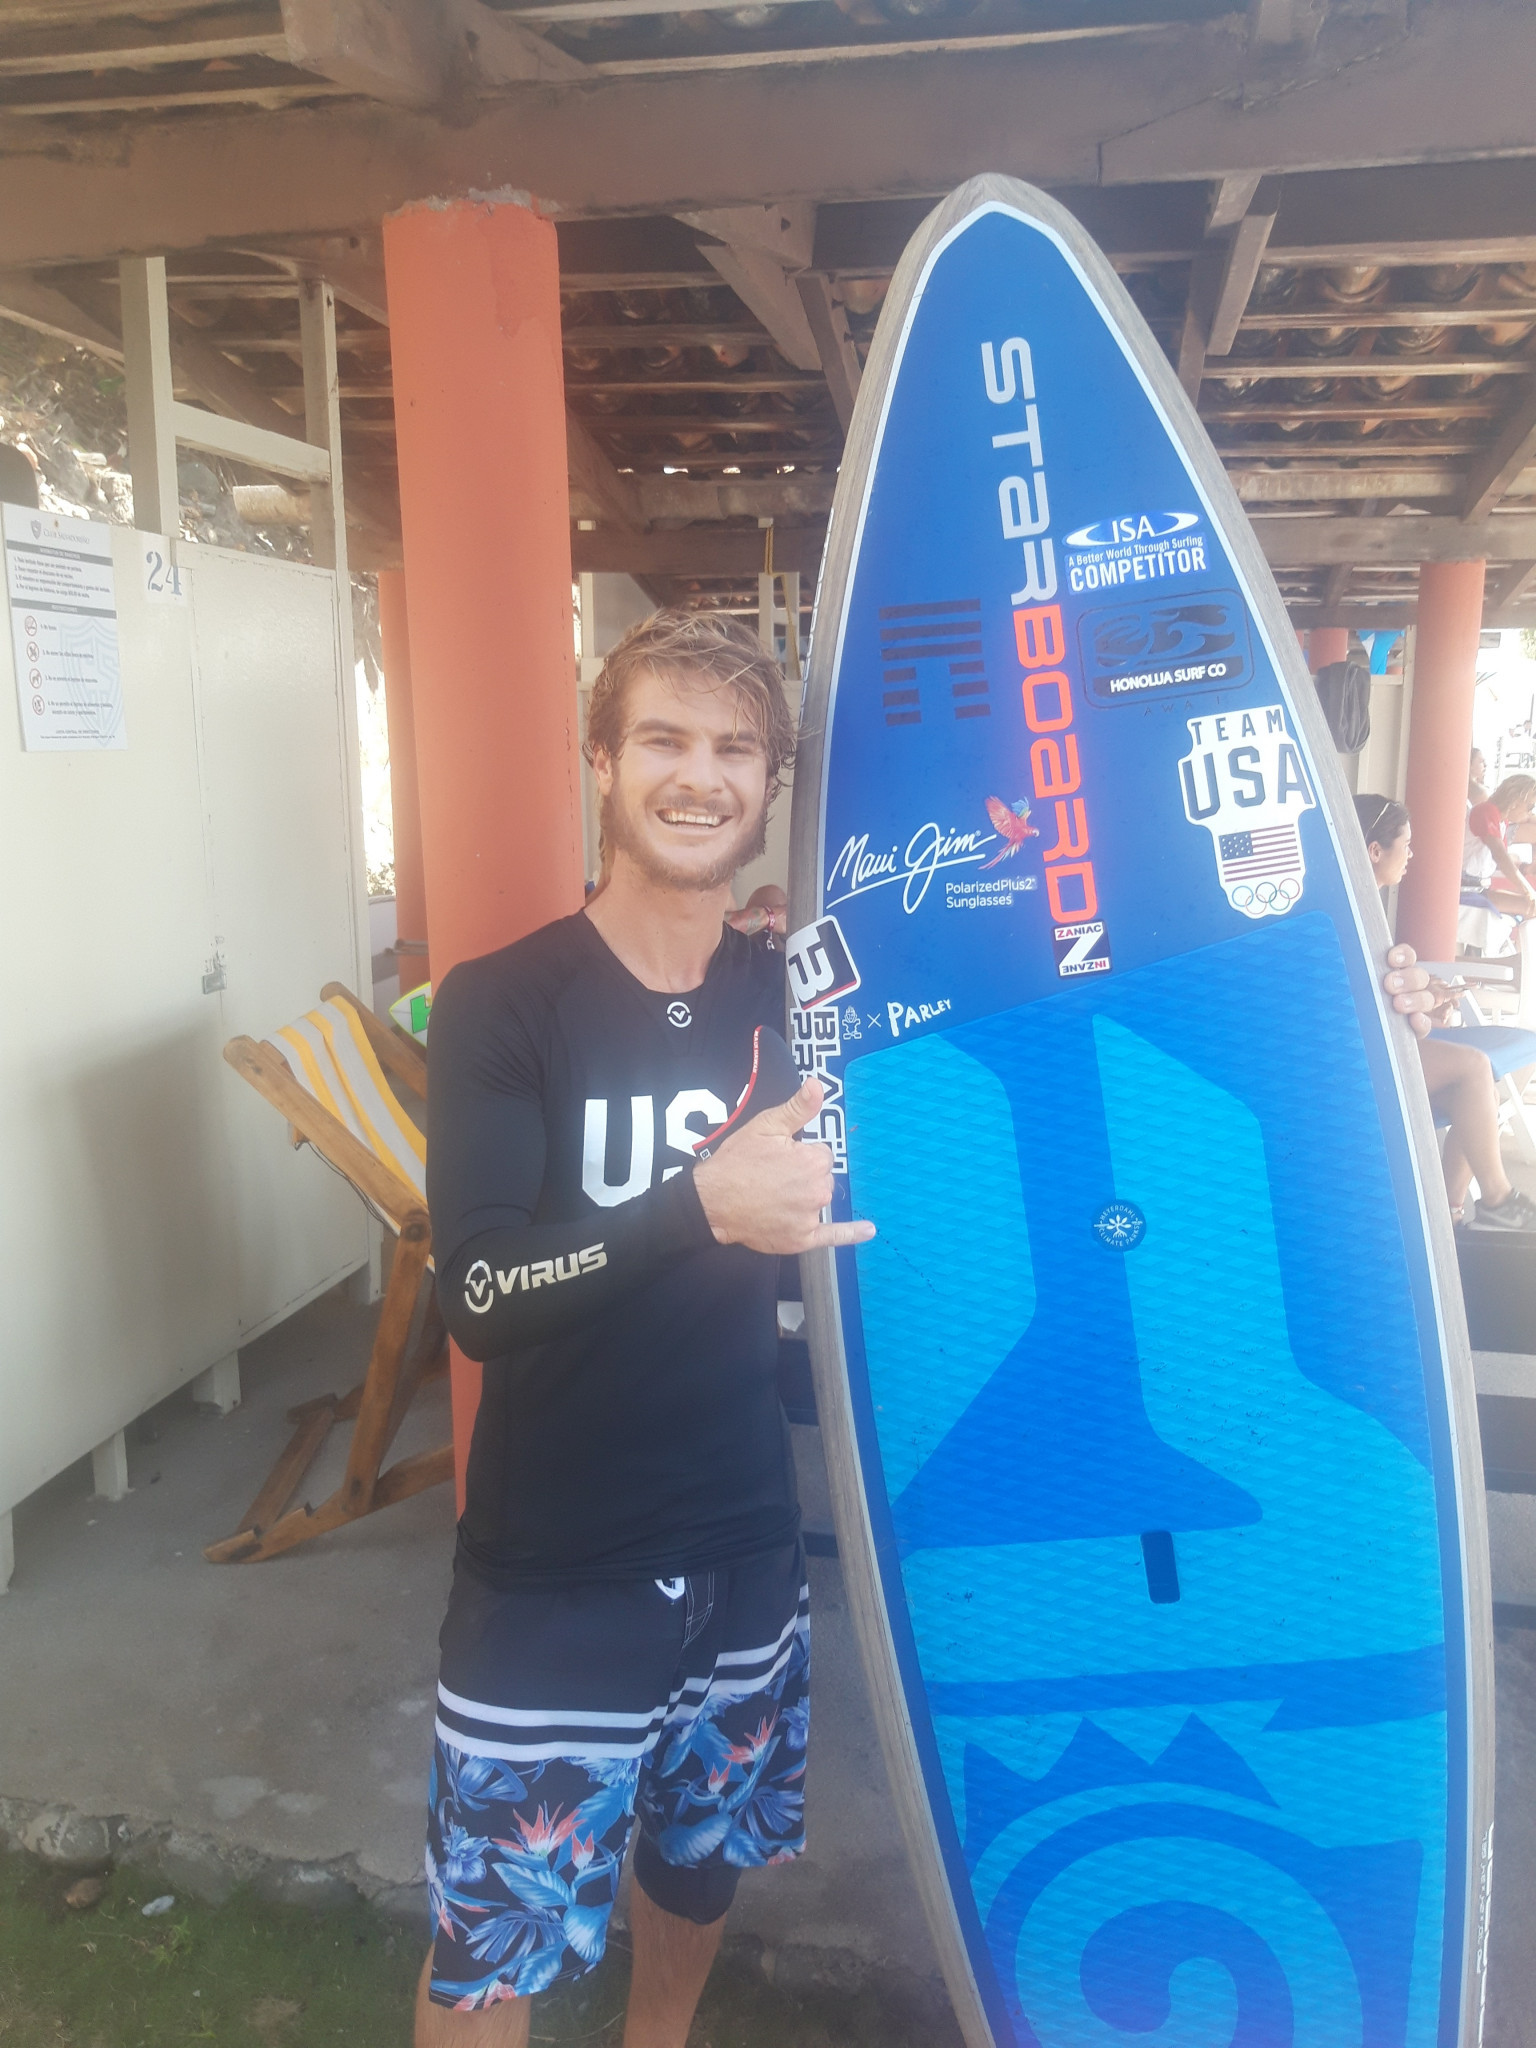 """American world champion claims ISA will maintain """"ocean playground"""" in standup paddle ownership feud"""